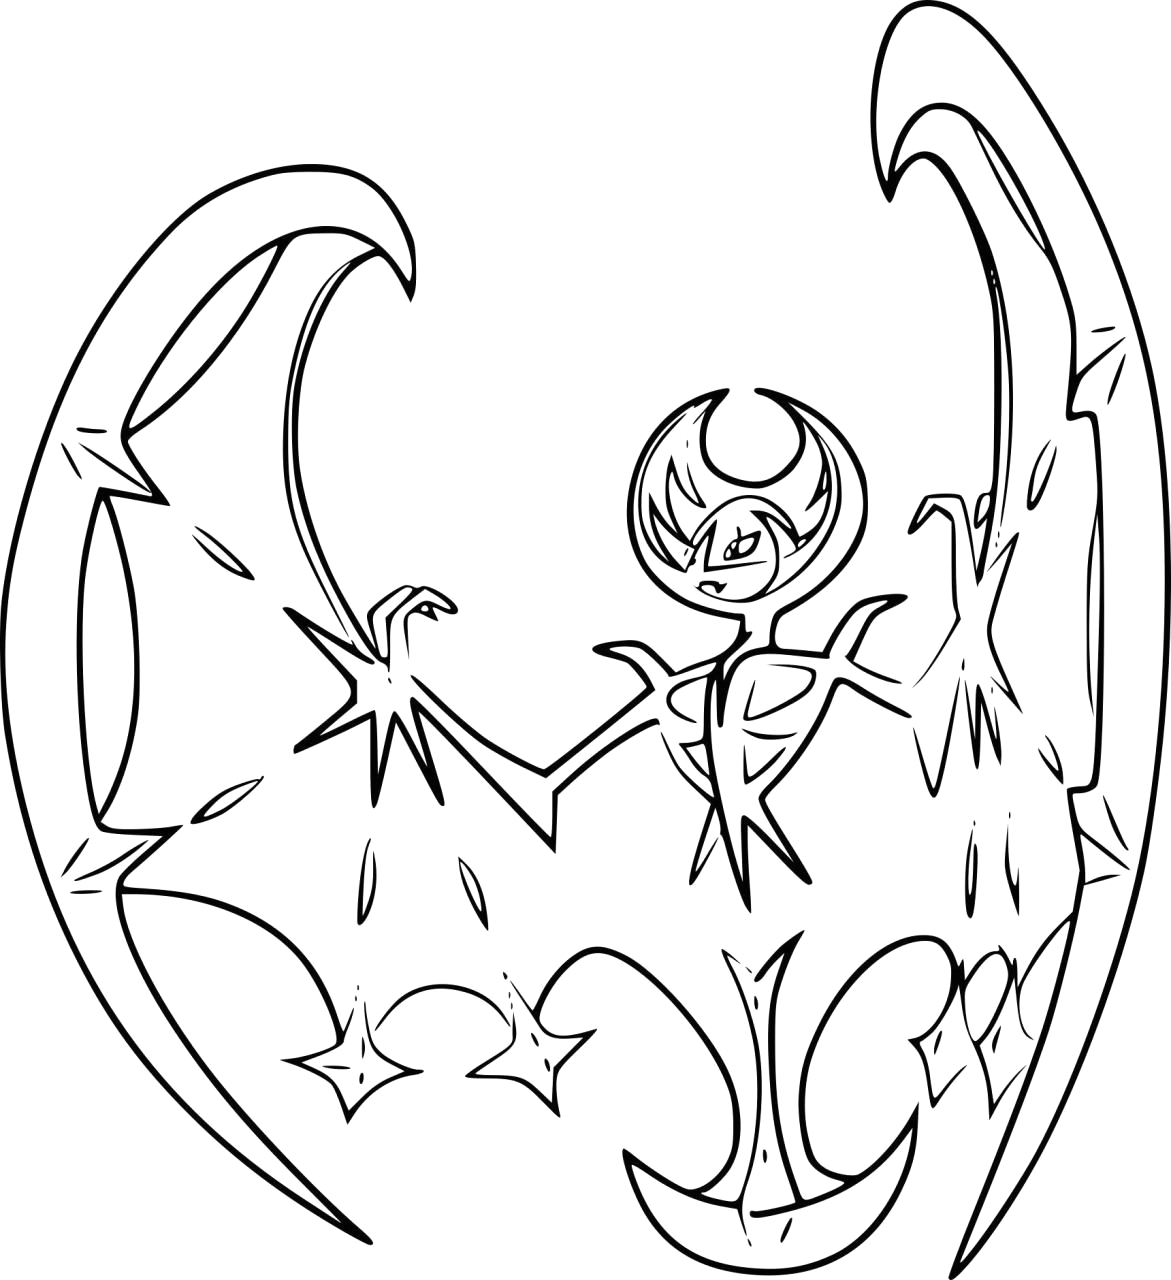 Legendary Pokemon Sun and Moon Coloring Pages Legendary Mega Sun and Moon Pokemon Coloring Pages